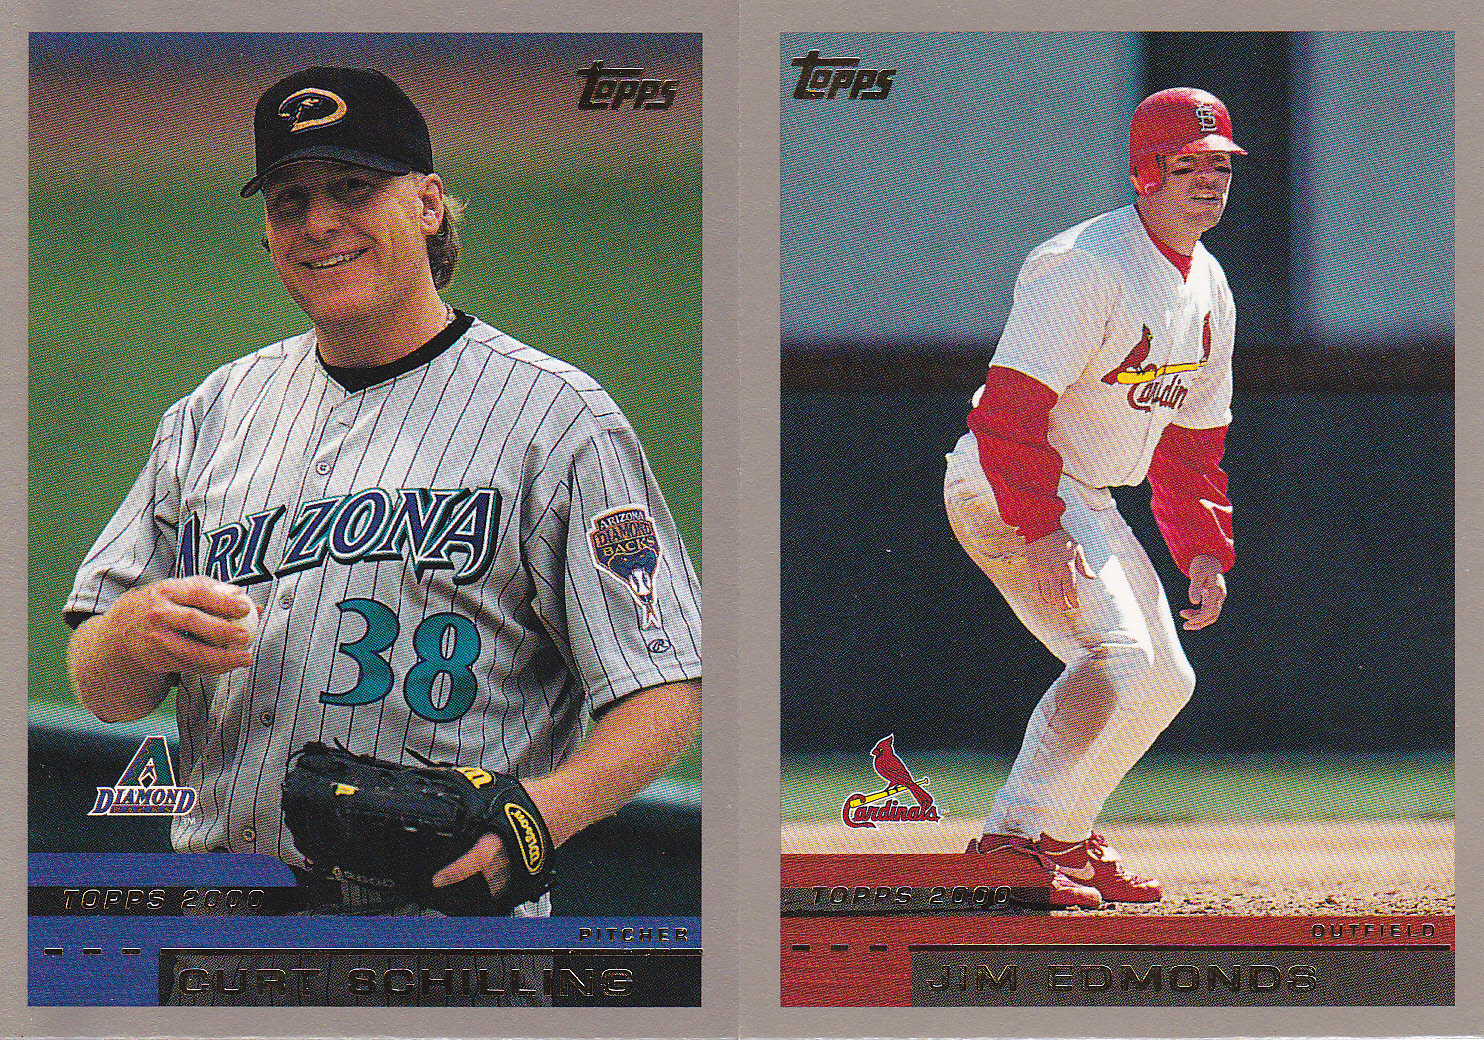 2000 Topps Traded Lifetime Topps Project